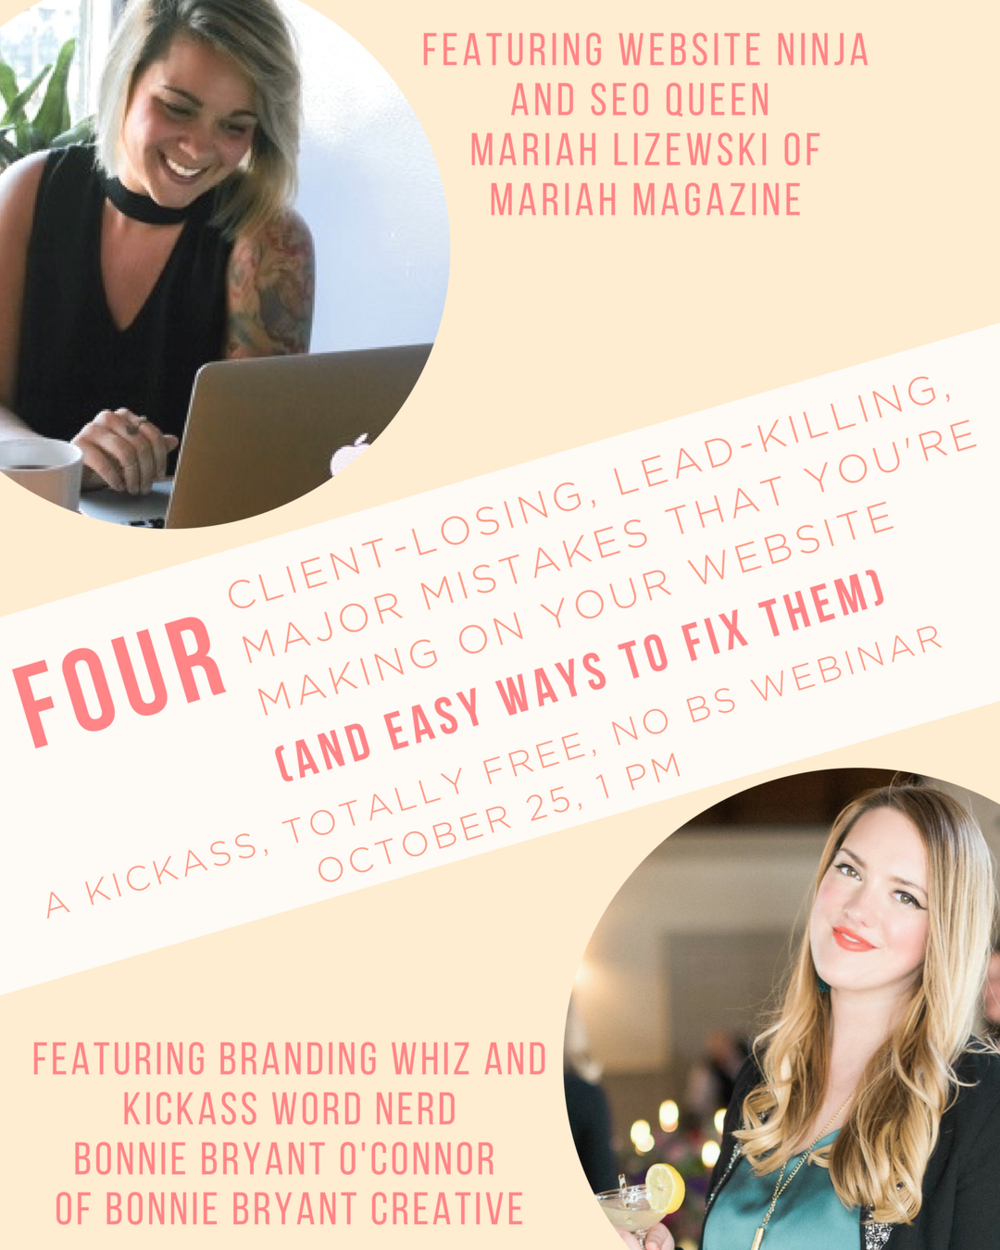 free webinar - four client losing lead killing major mistakes you're making on your website